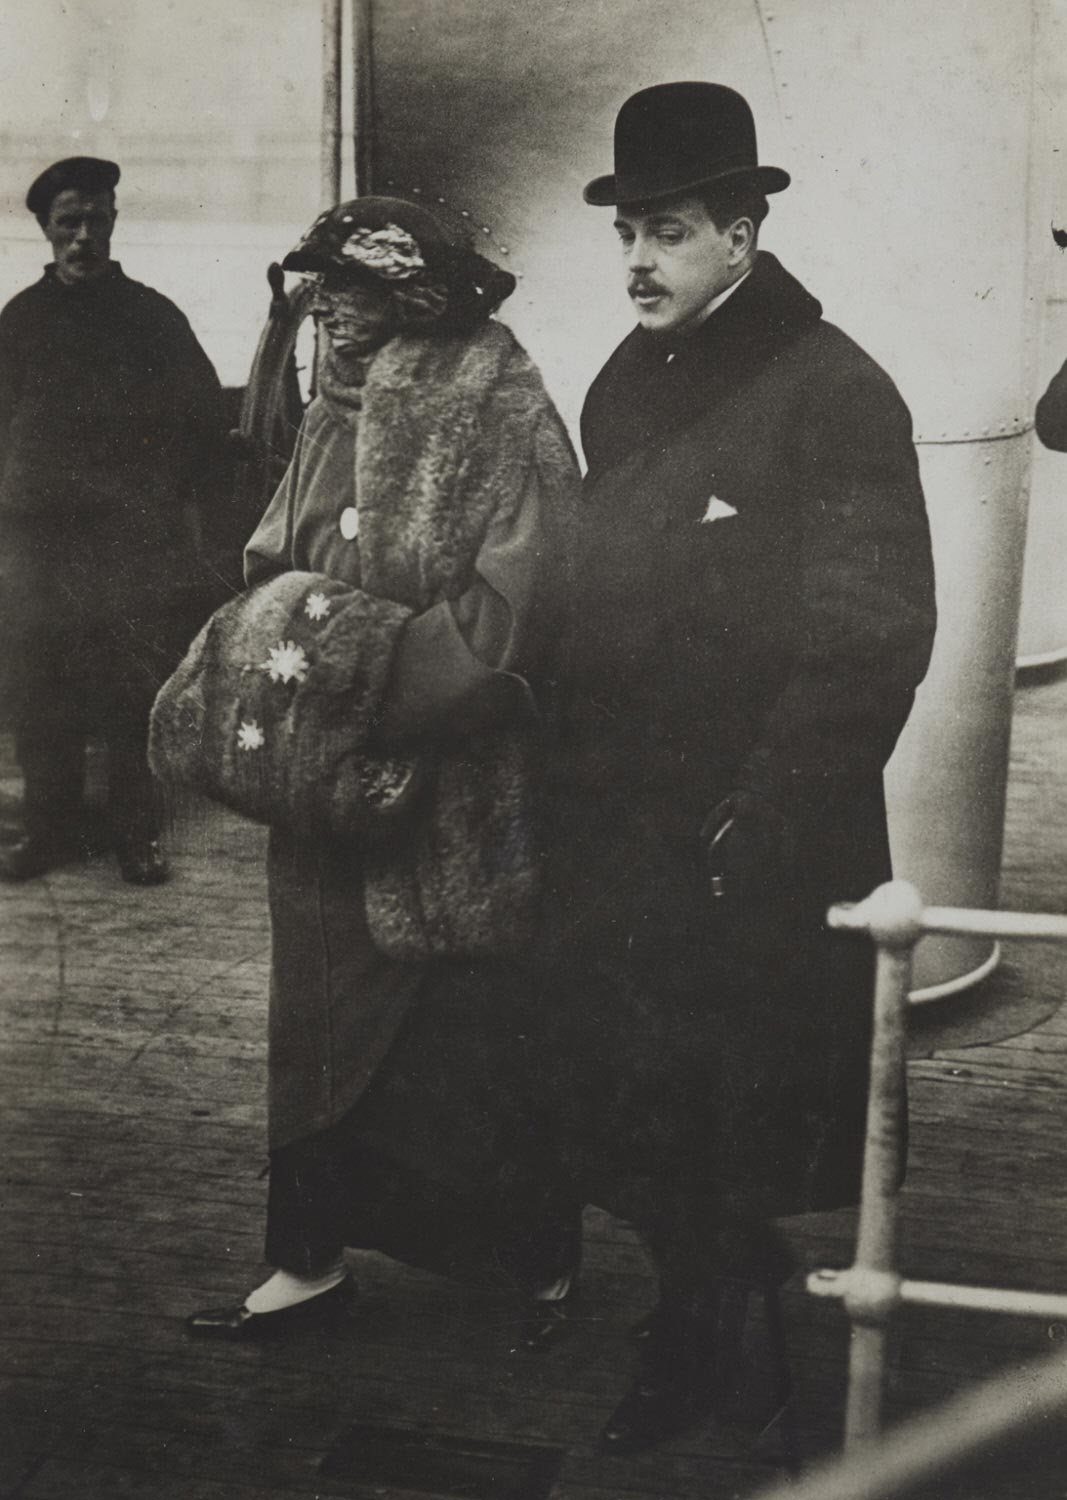 Manuel II, Deposed King of Portugal, and His Wife, Returning from Their Honeymoon